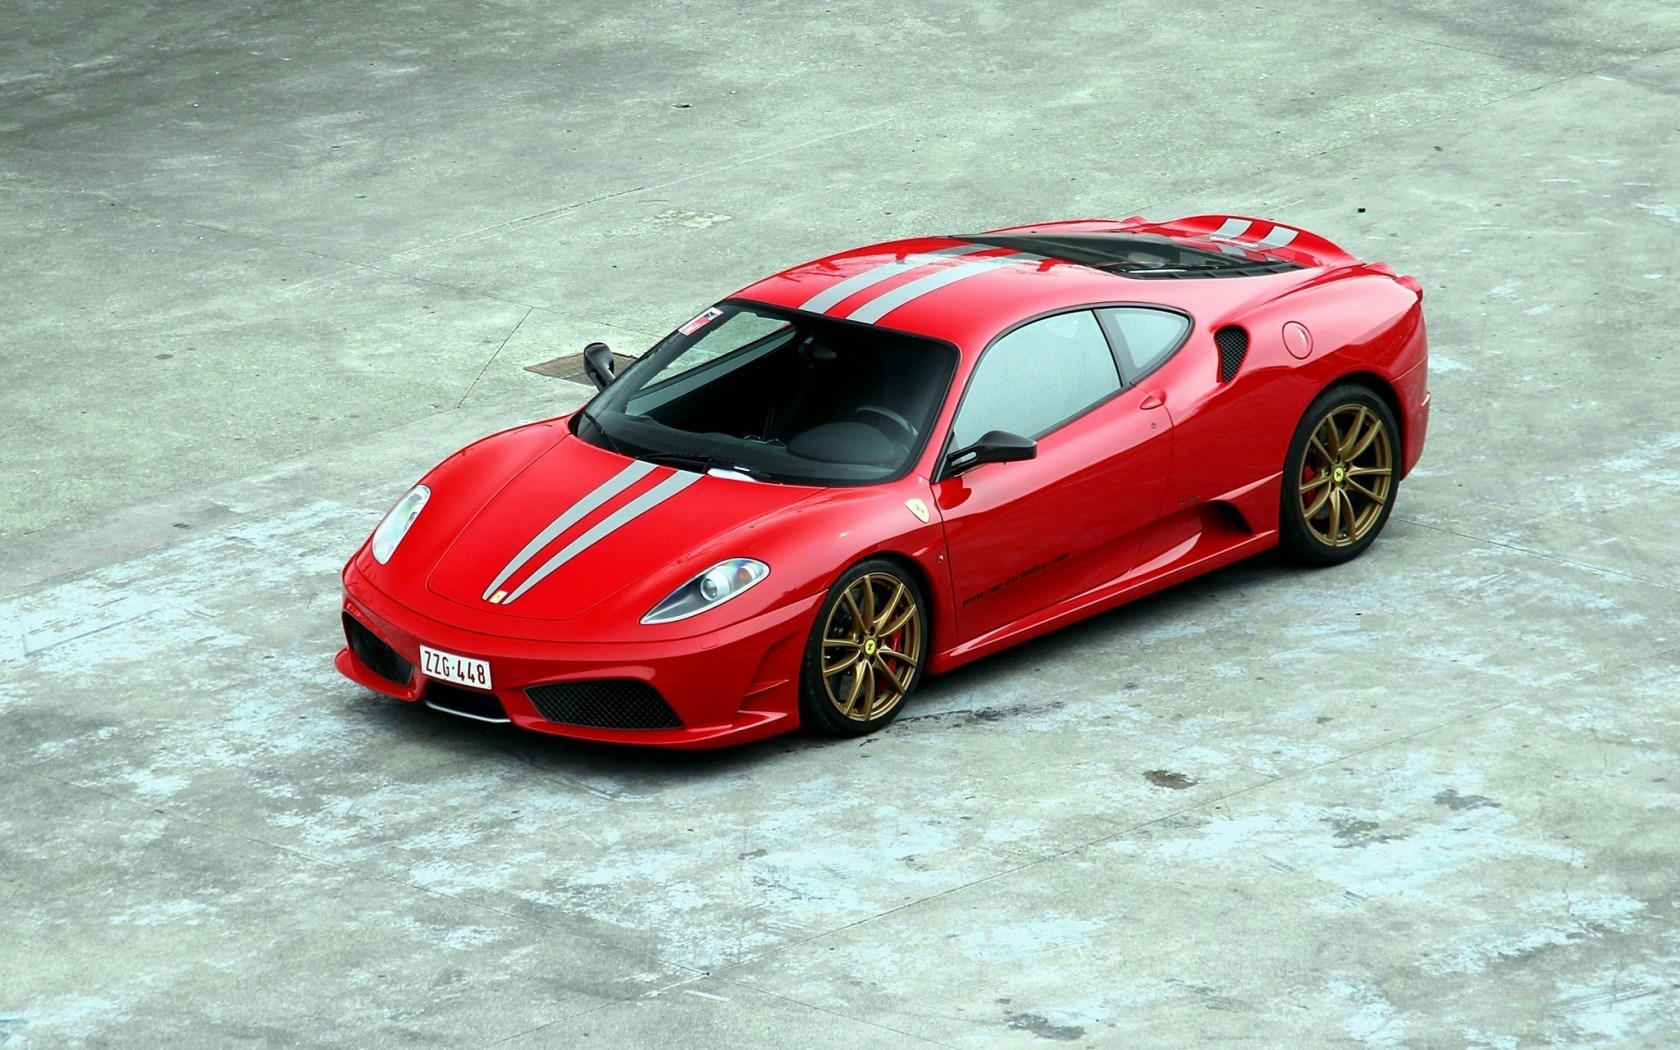 ferrari f430 scuderia red wallpaper 1680x1050 16799. Black Bedroom Furniture Sets. Home Design Ideas